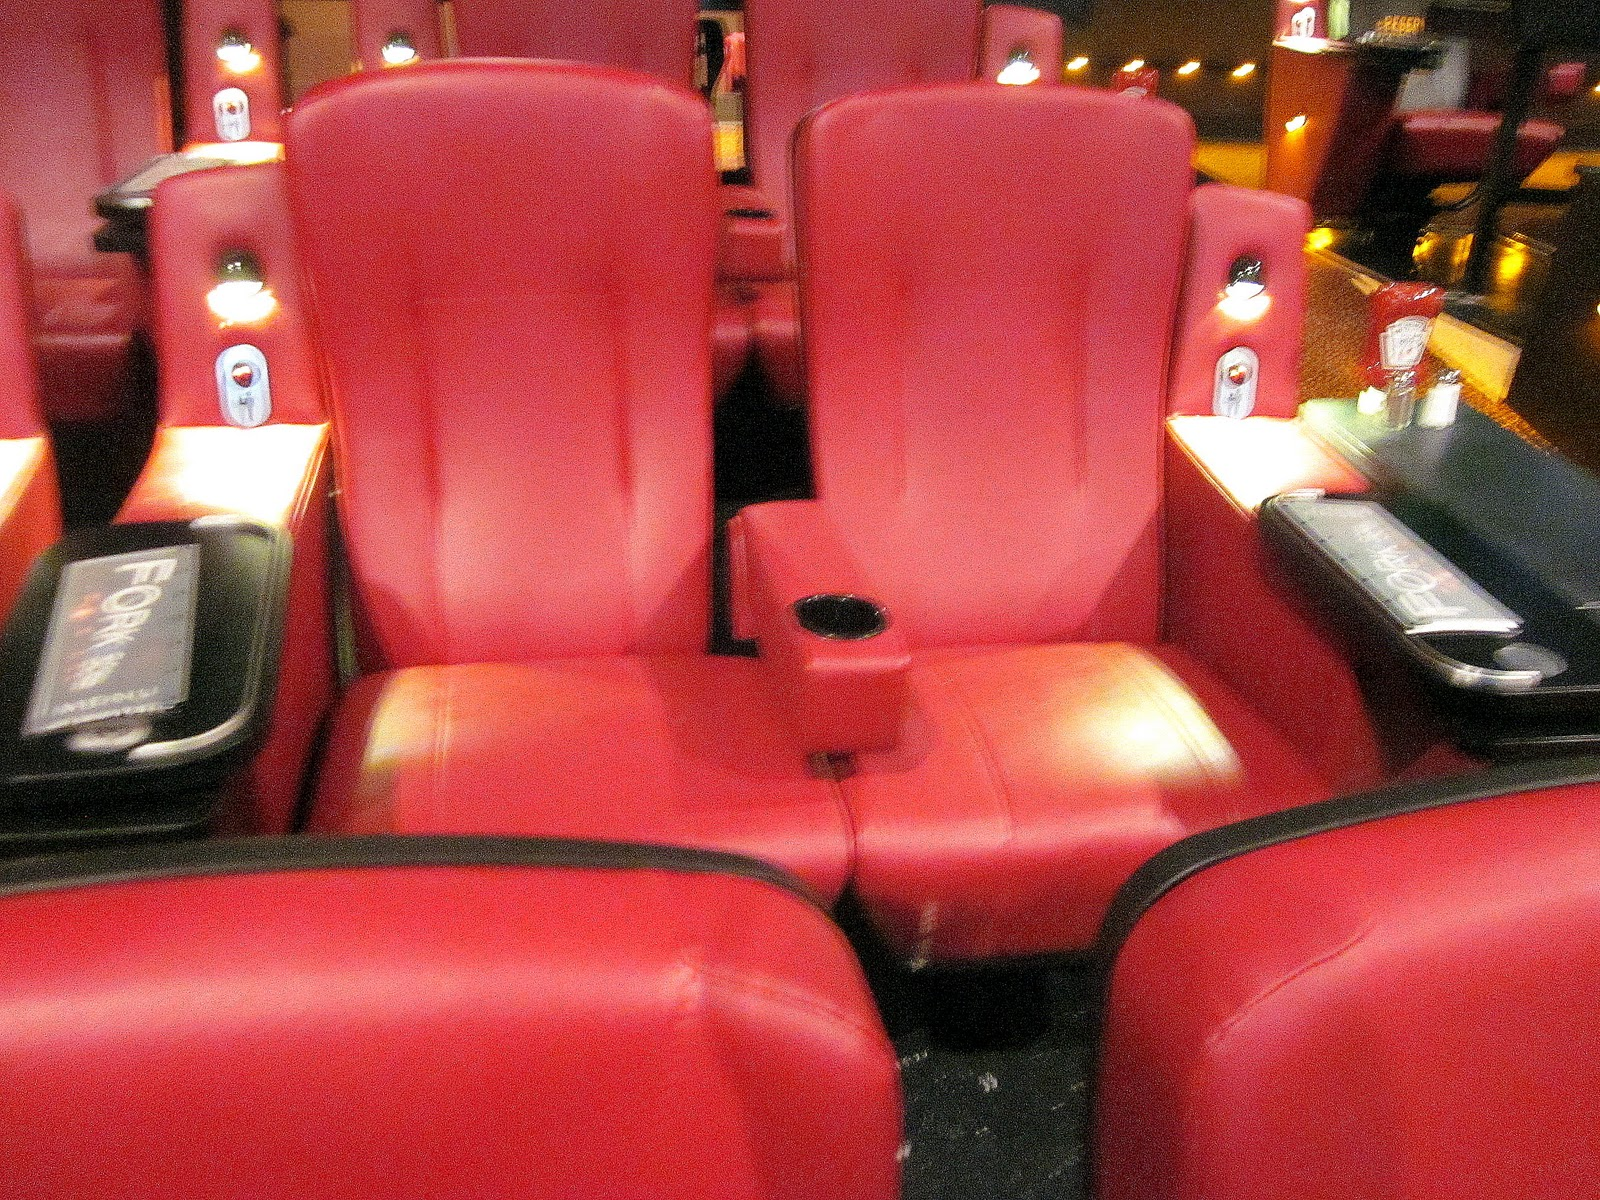 The foodie monster amc dine in theater in nj New jersey dine in theatre